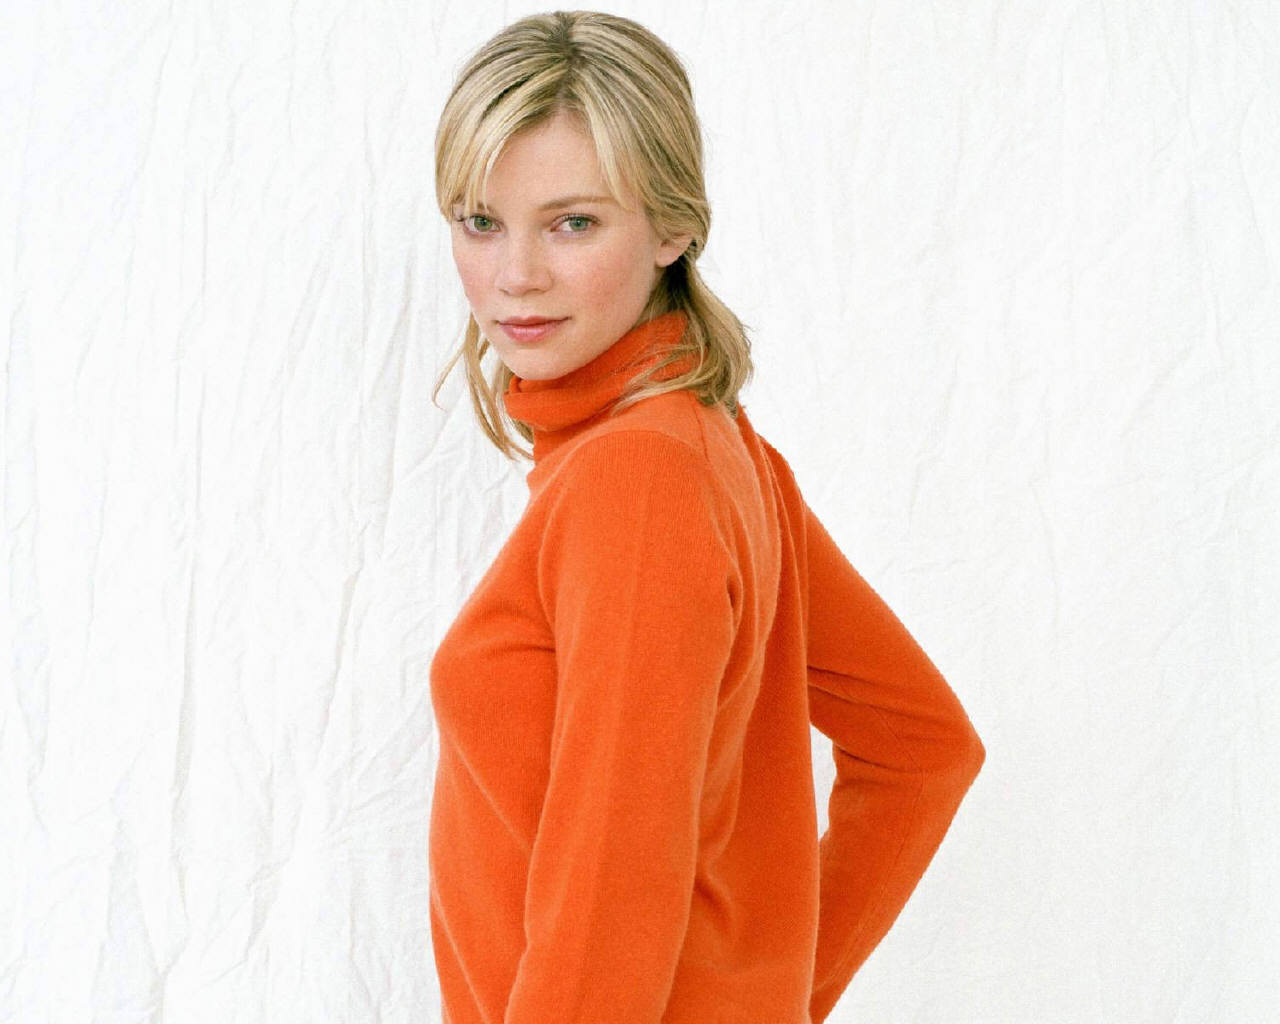 1280x1024 - Amy Smart Wallpapers 26